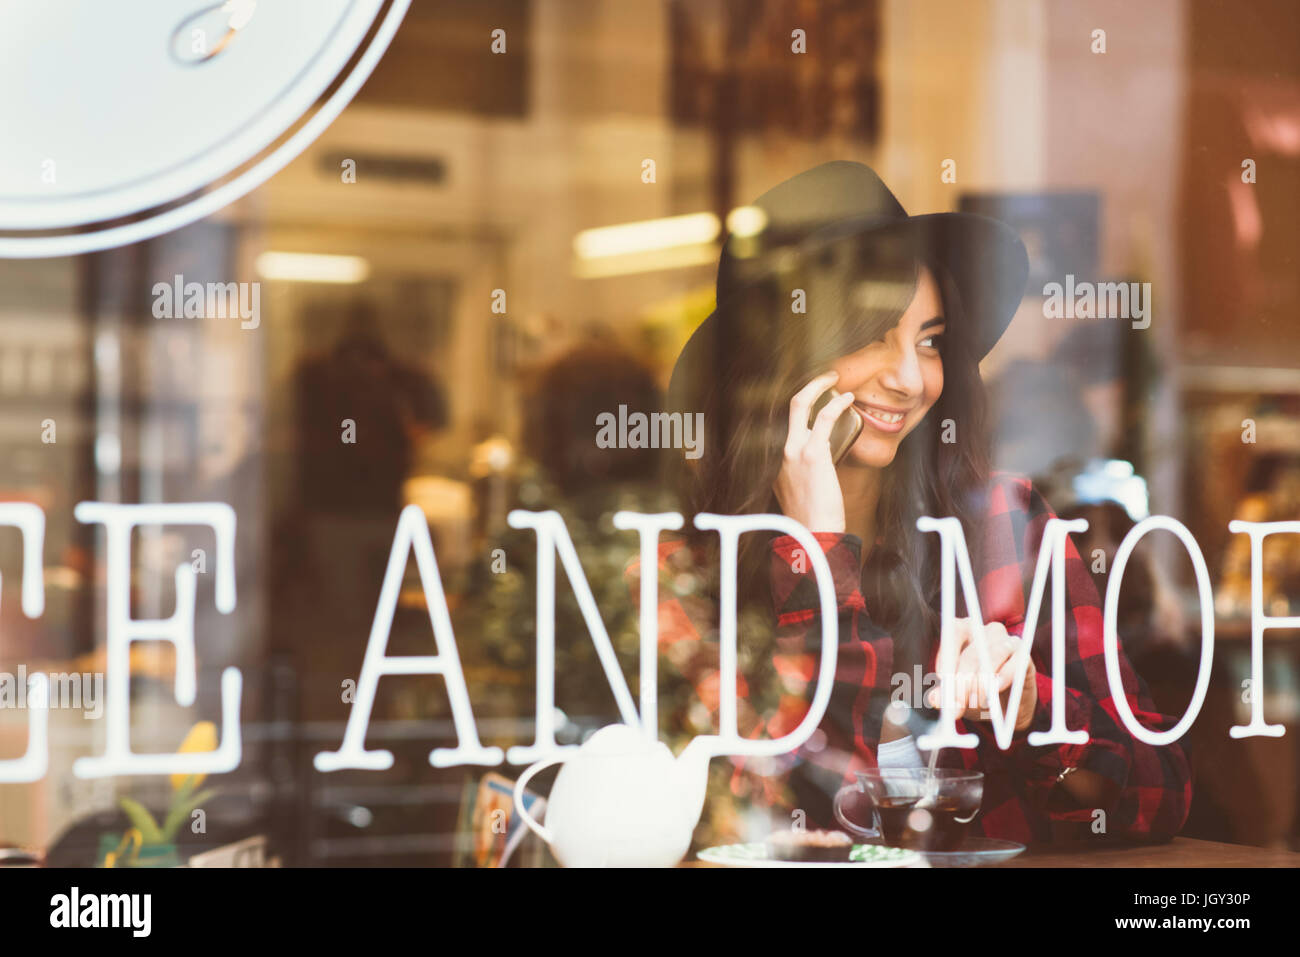 Young woman sitting in cafe, using smartphone, view through window - Stock Image